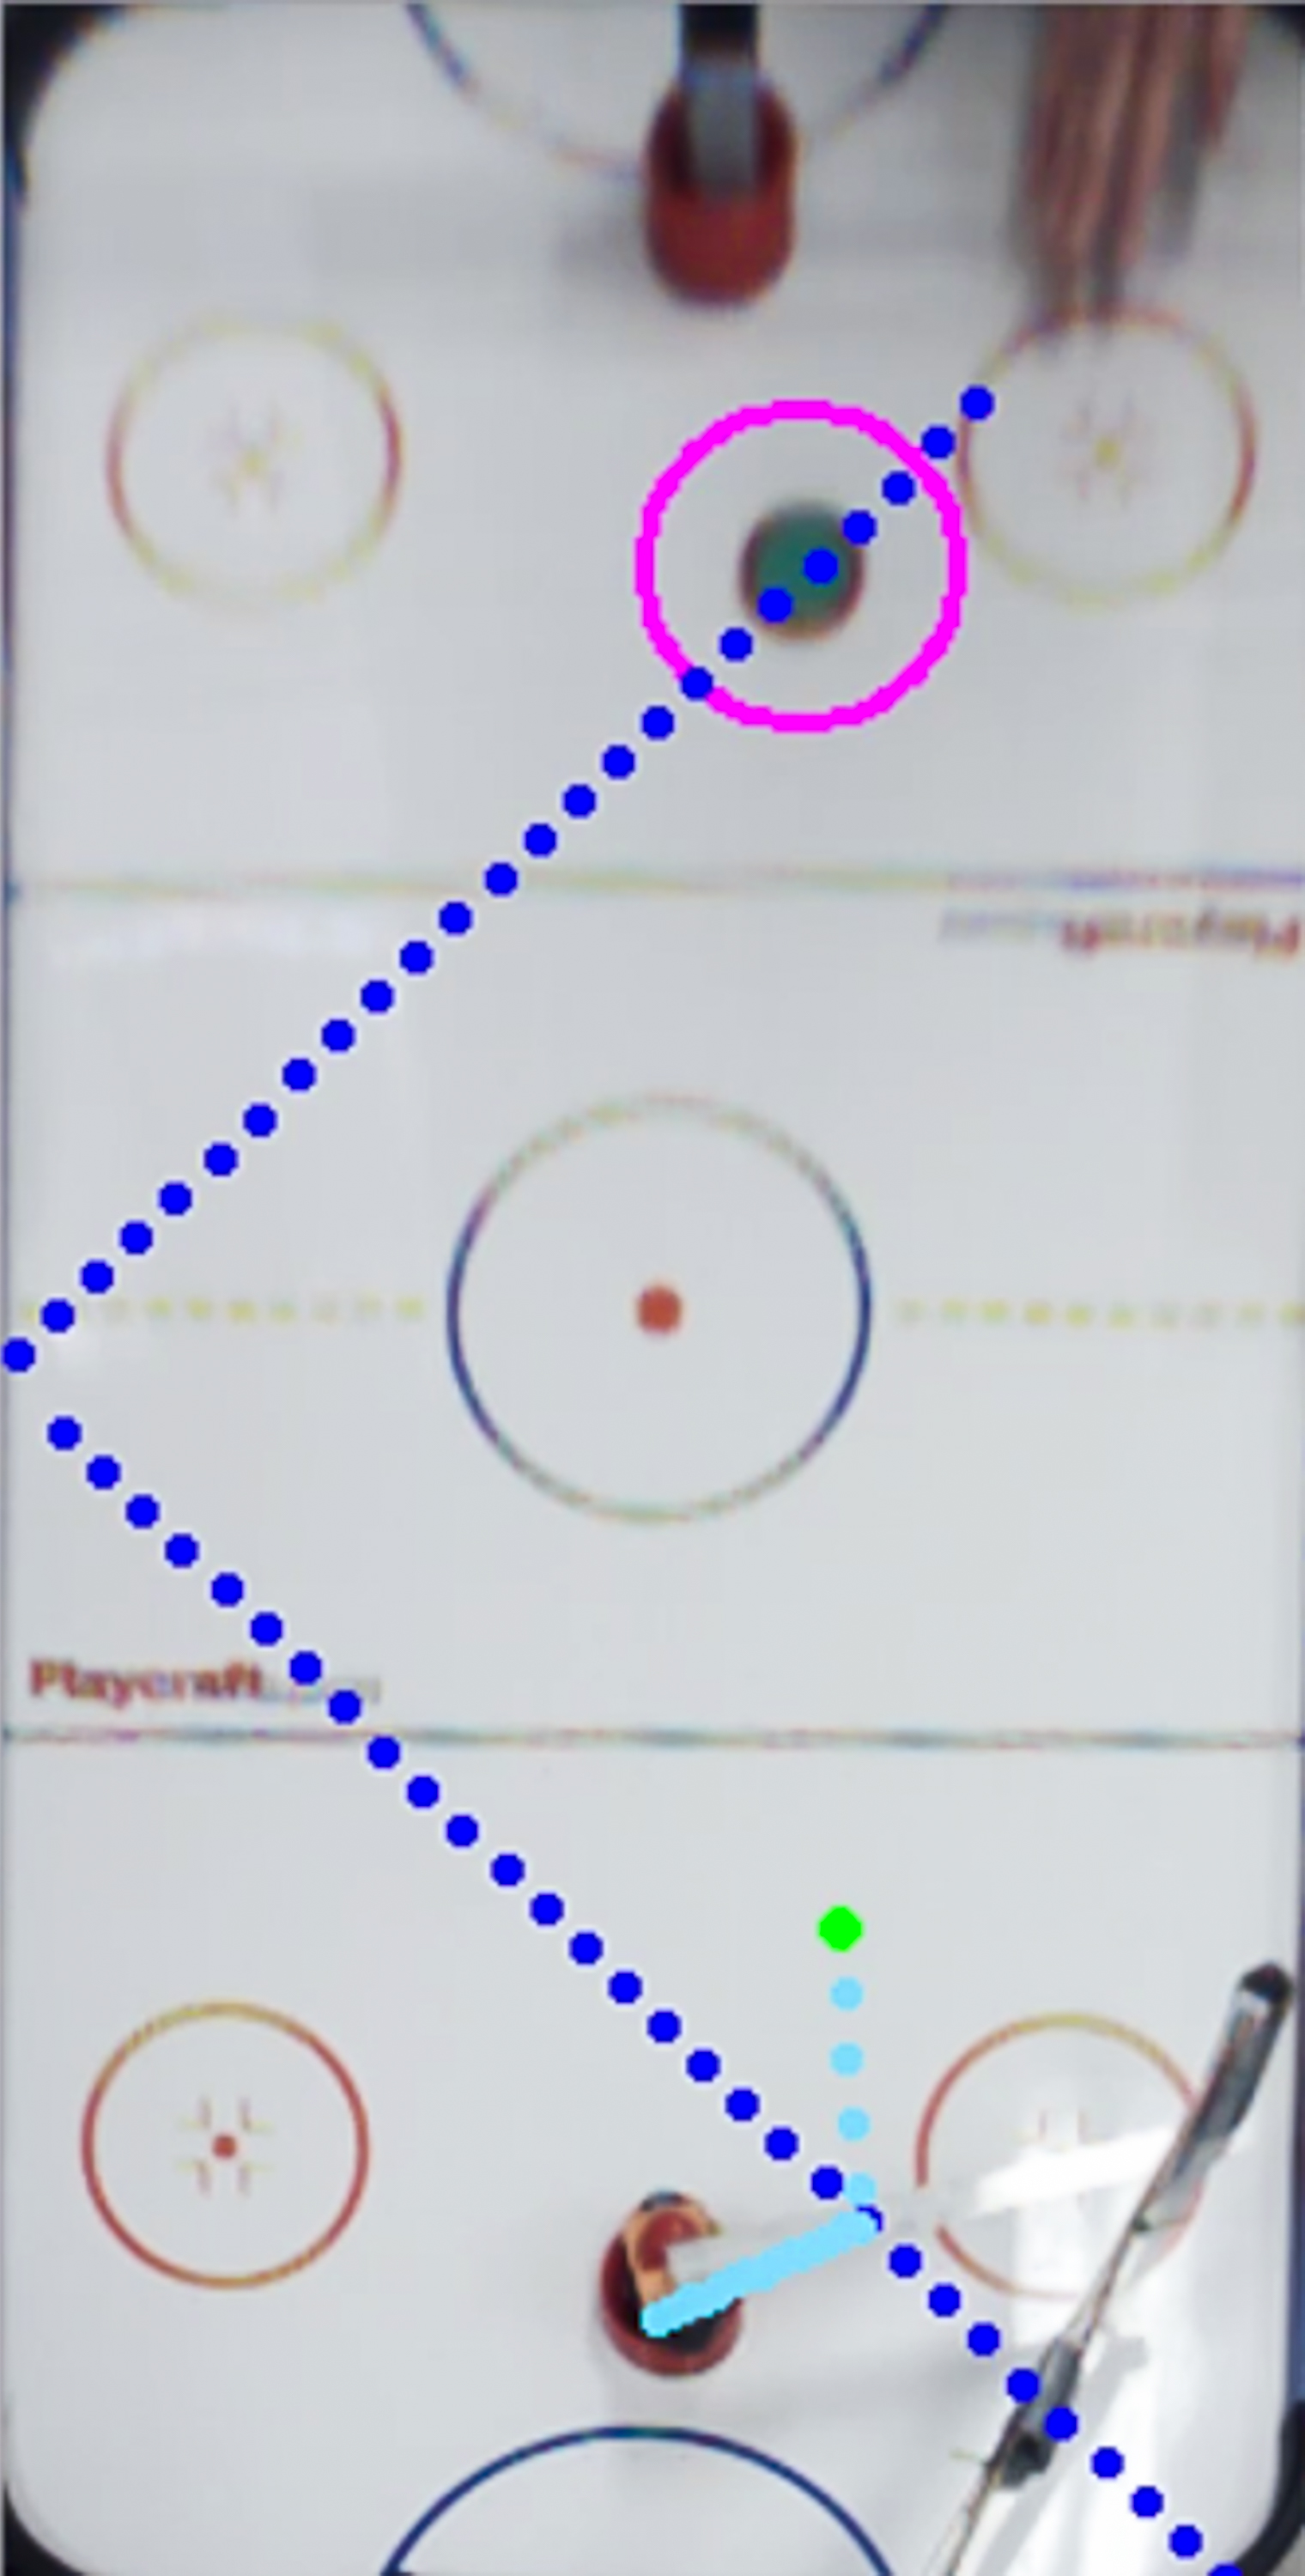 Figure 5  Puck trajectory predictions and arm movements